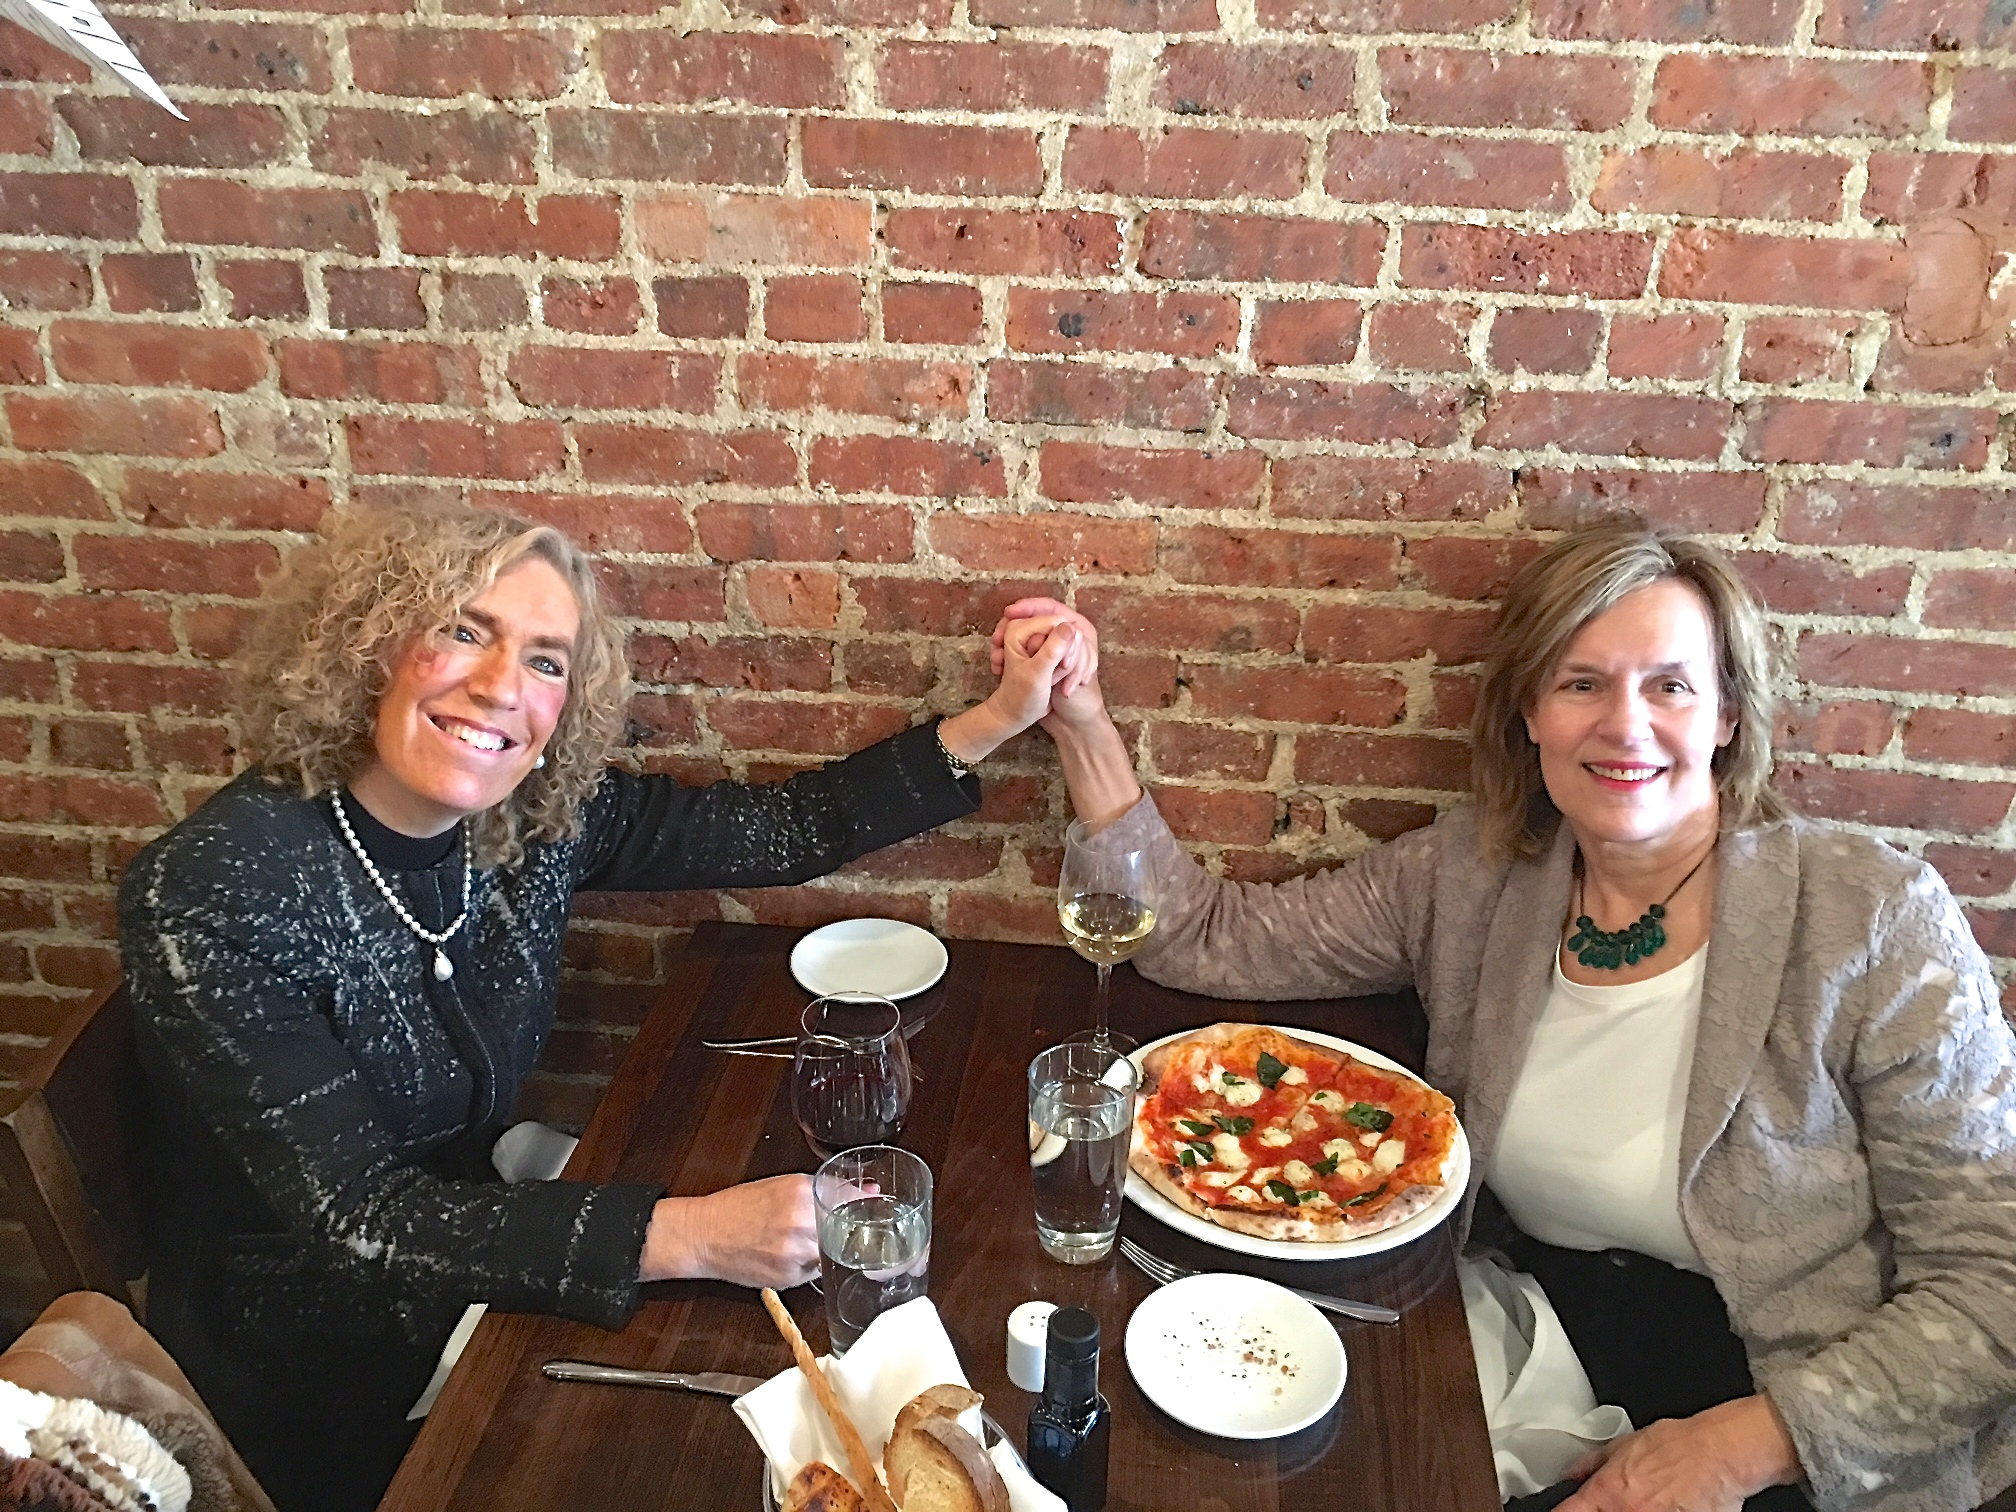 Drs. Elaine Fuchs & Lorraine Gudas, 12-2016 Lunch..  Girls Rule!